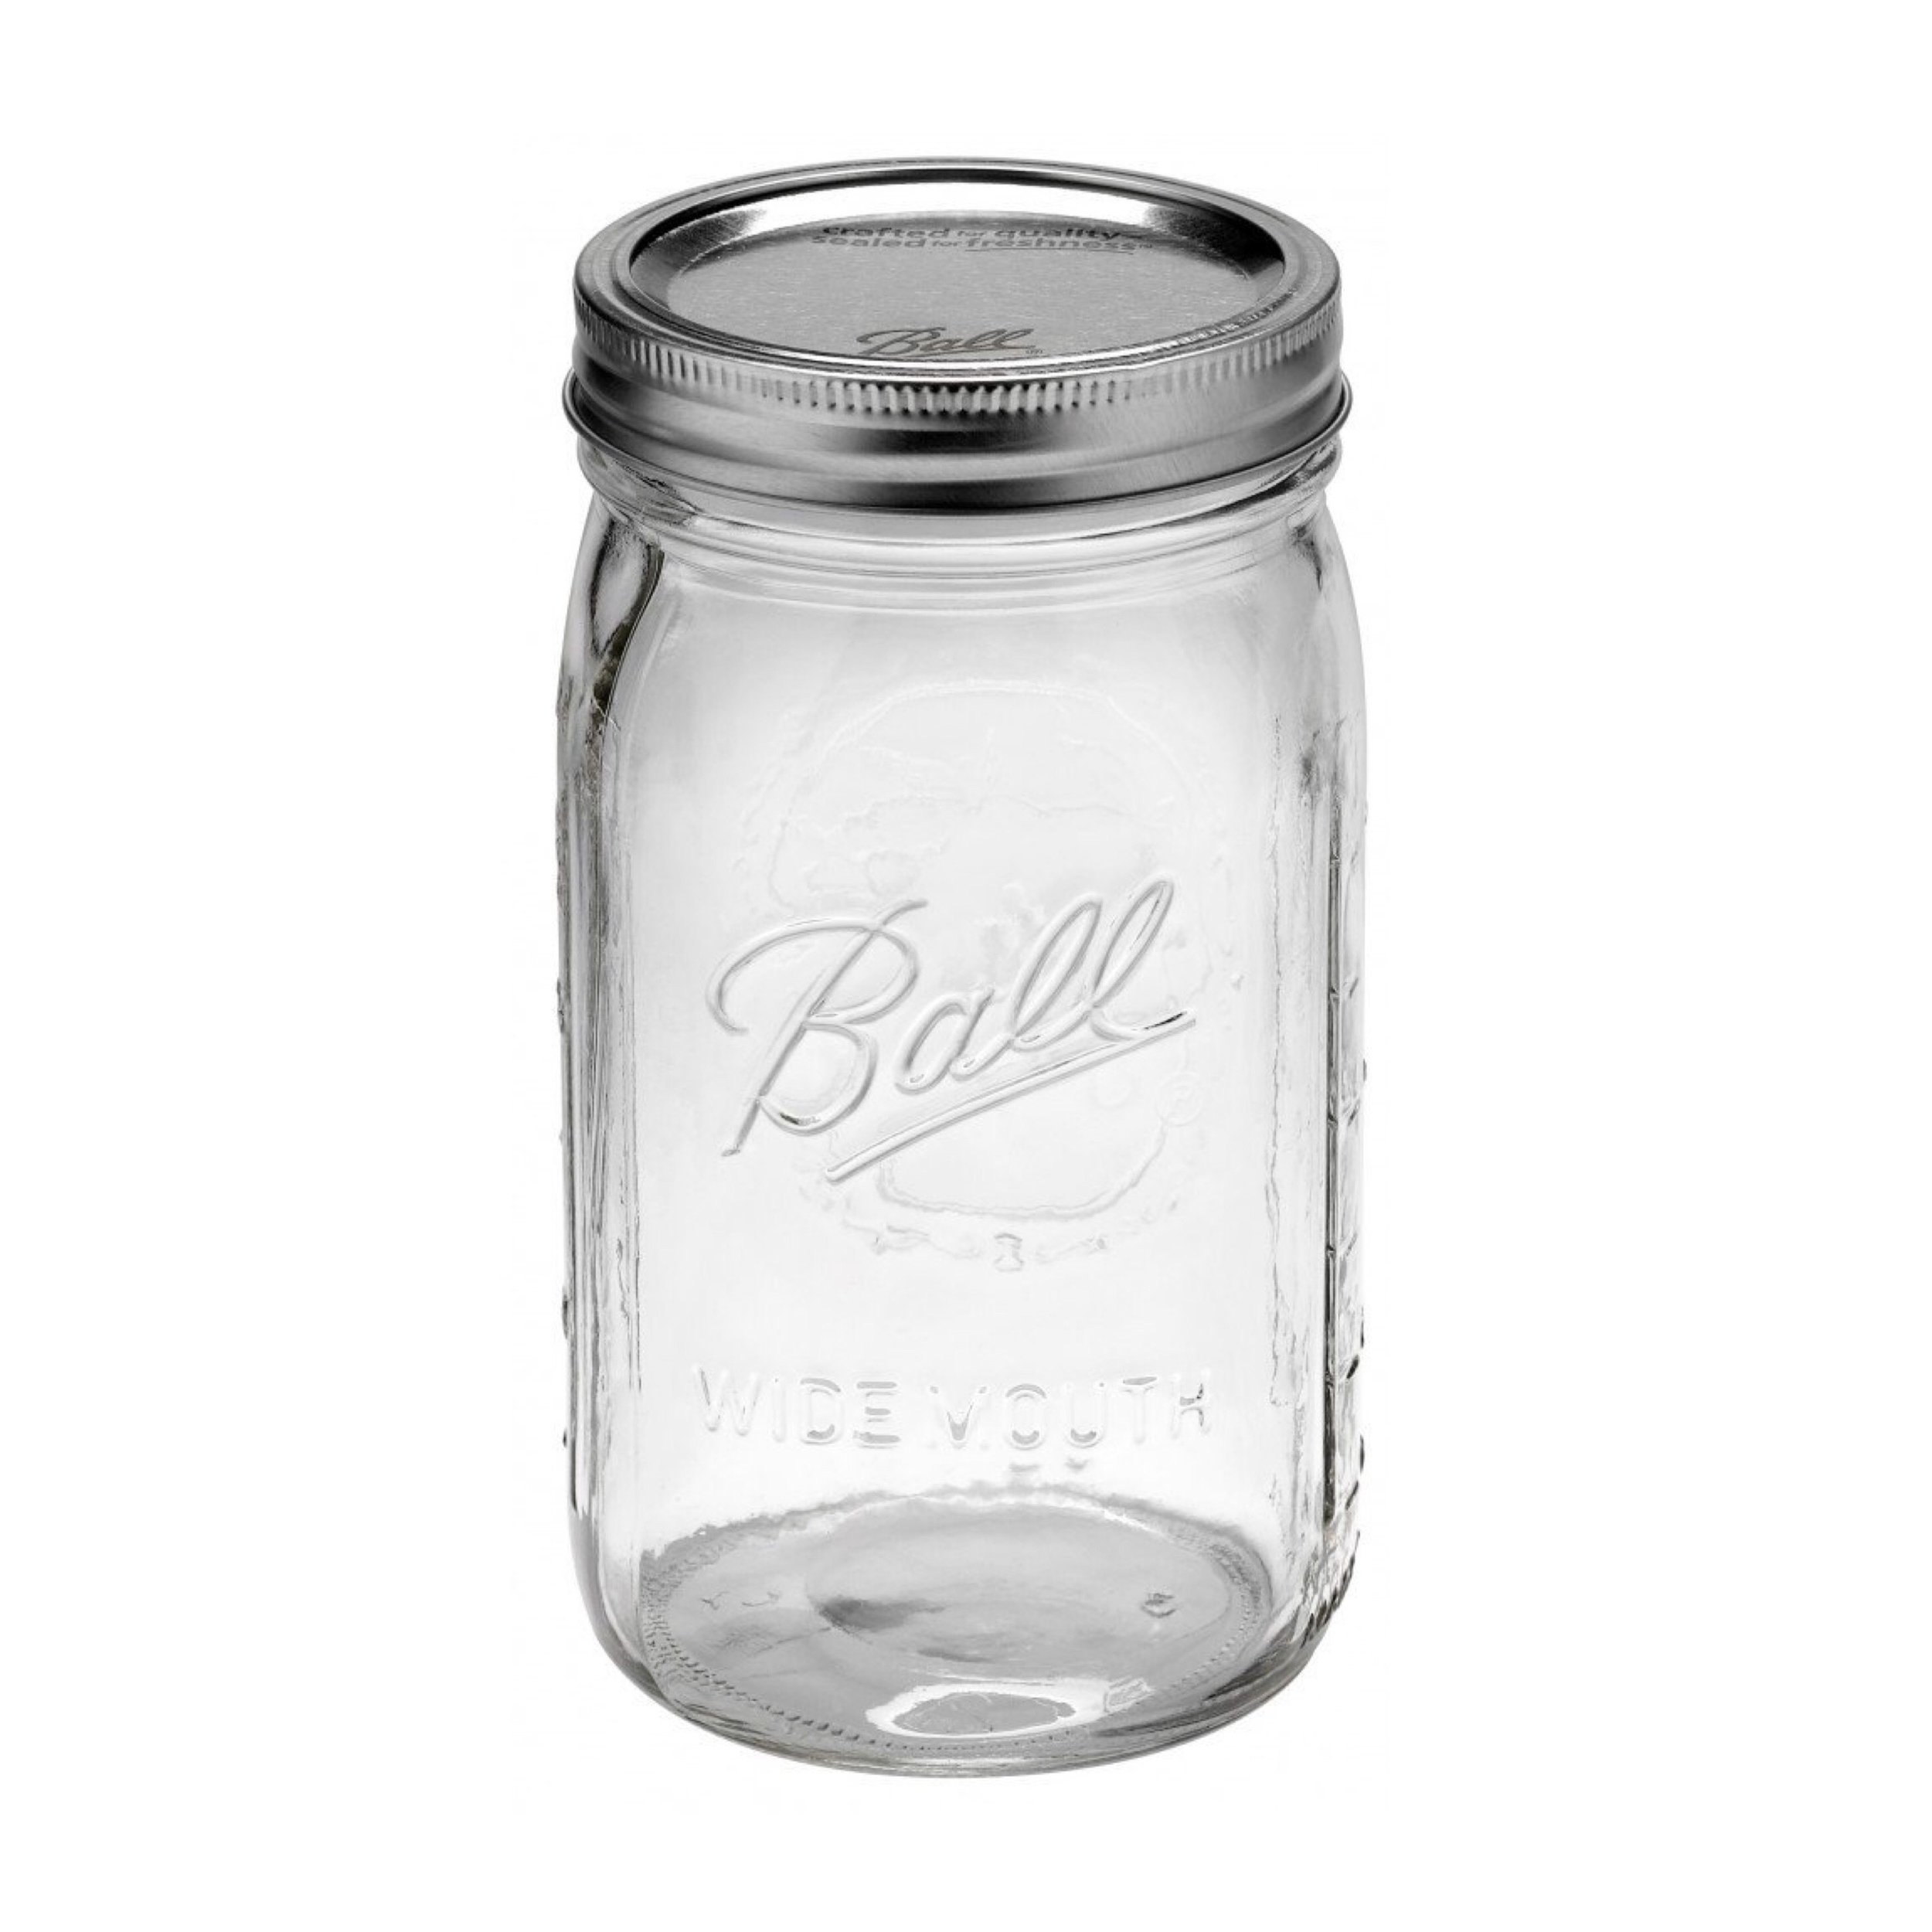 Ball Mason - 32 oz / 950mL Wide Mouth Jars (6 pack) - I've had my ball mason jars for years now and they are so sturdy and versatile! I use them to store my pantry goods (nuts, seeds, flours) but they are also great for storing liquids like fresh juices, smoothies or even simply for water. These 950mL jars are the perfect size and make fridge and pantry organisation so much easier (and of course, plastic-free!).